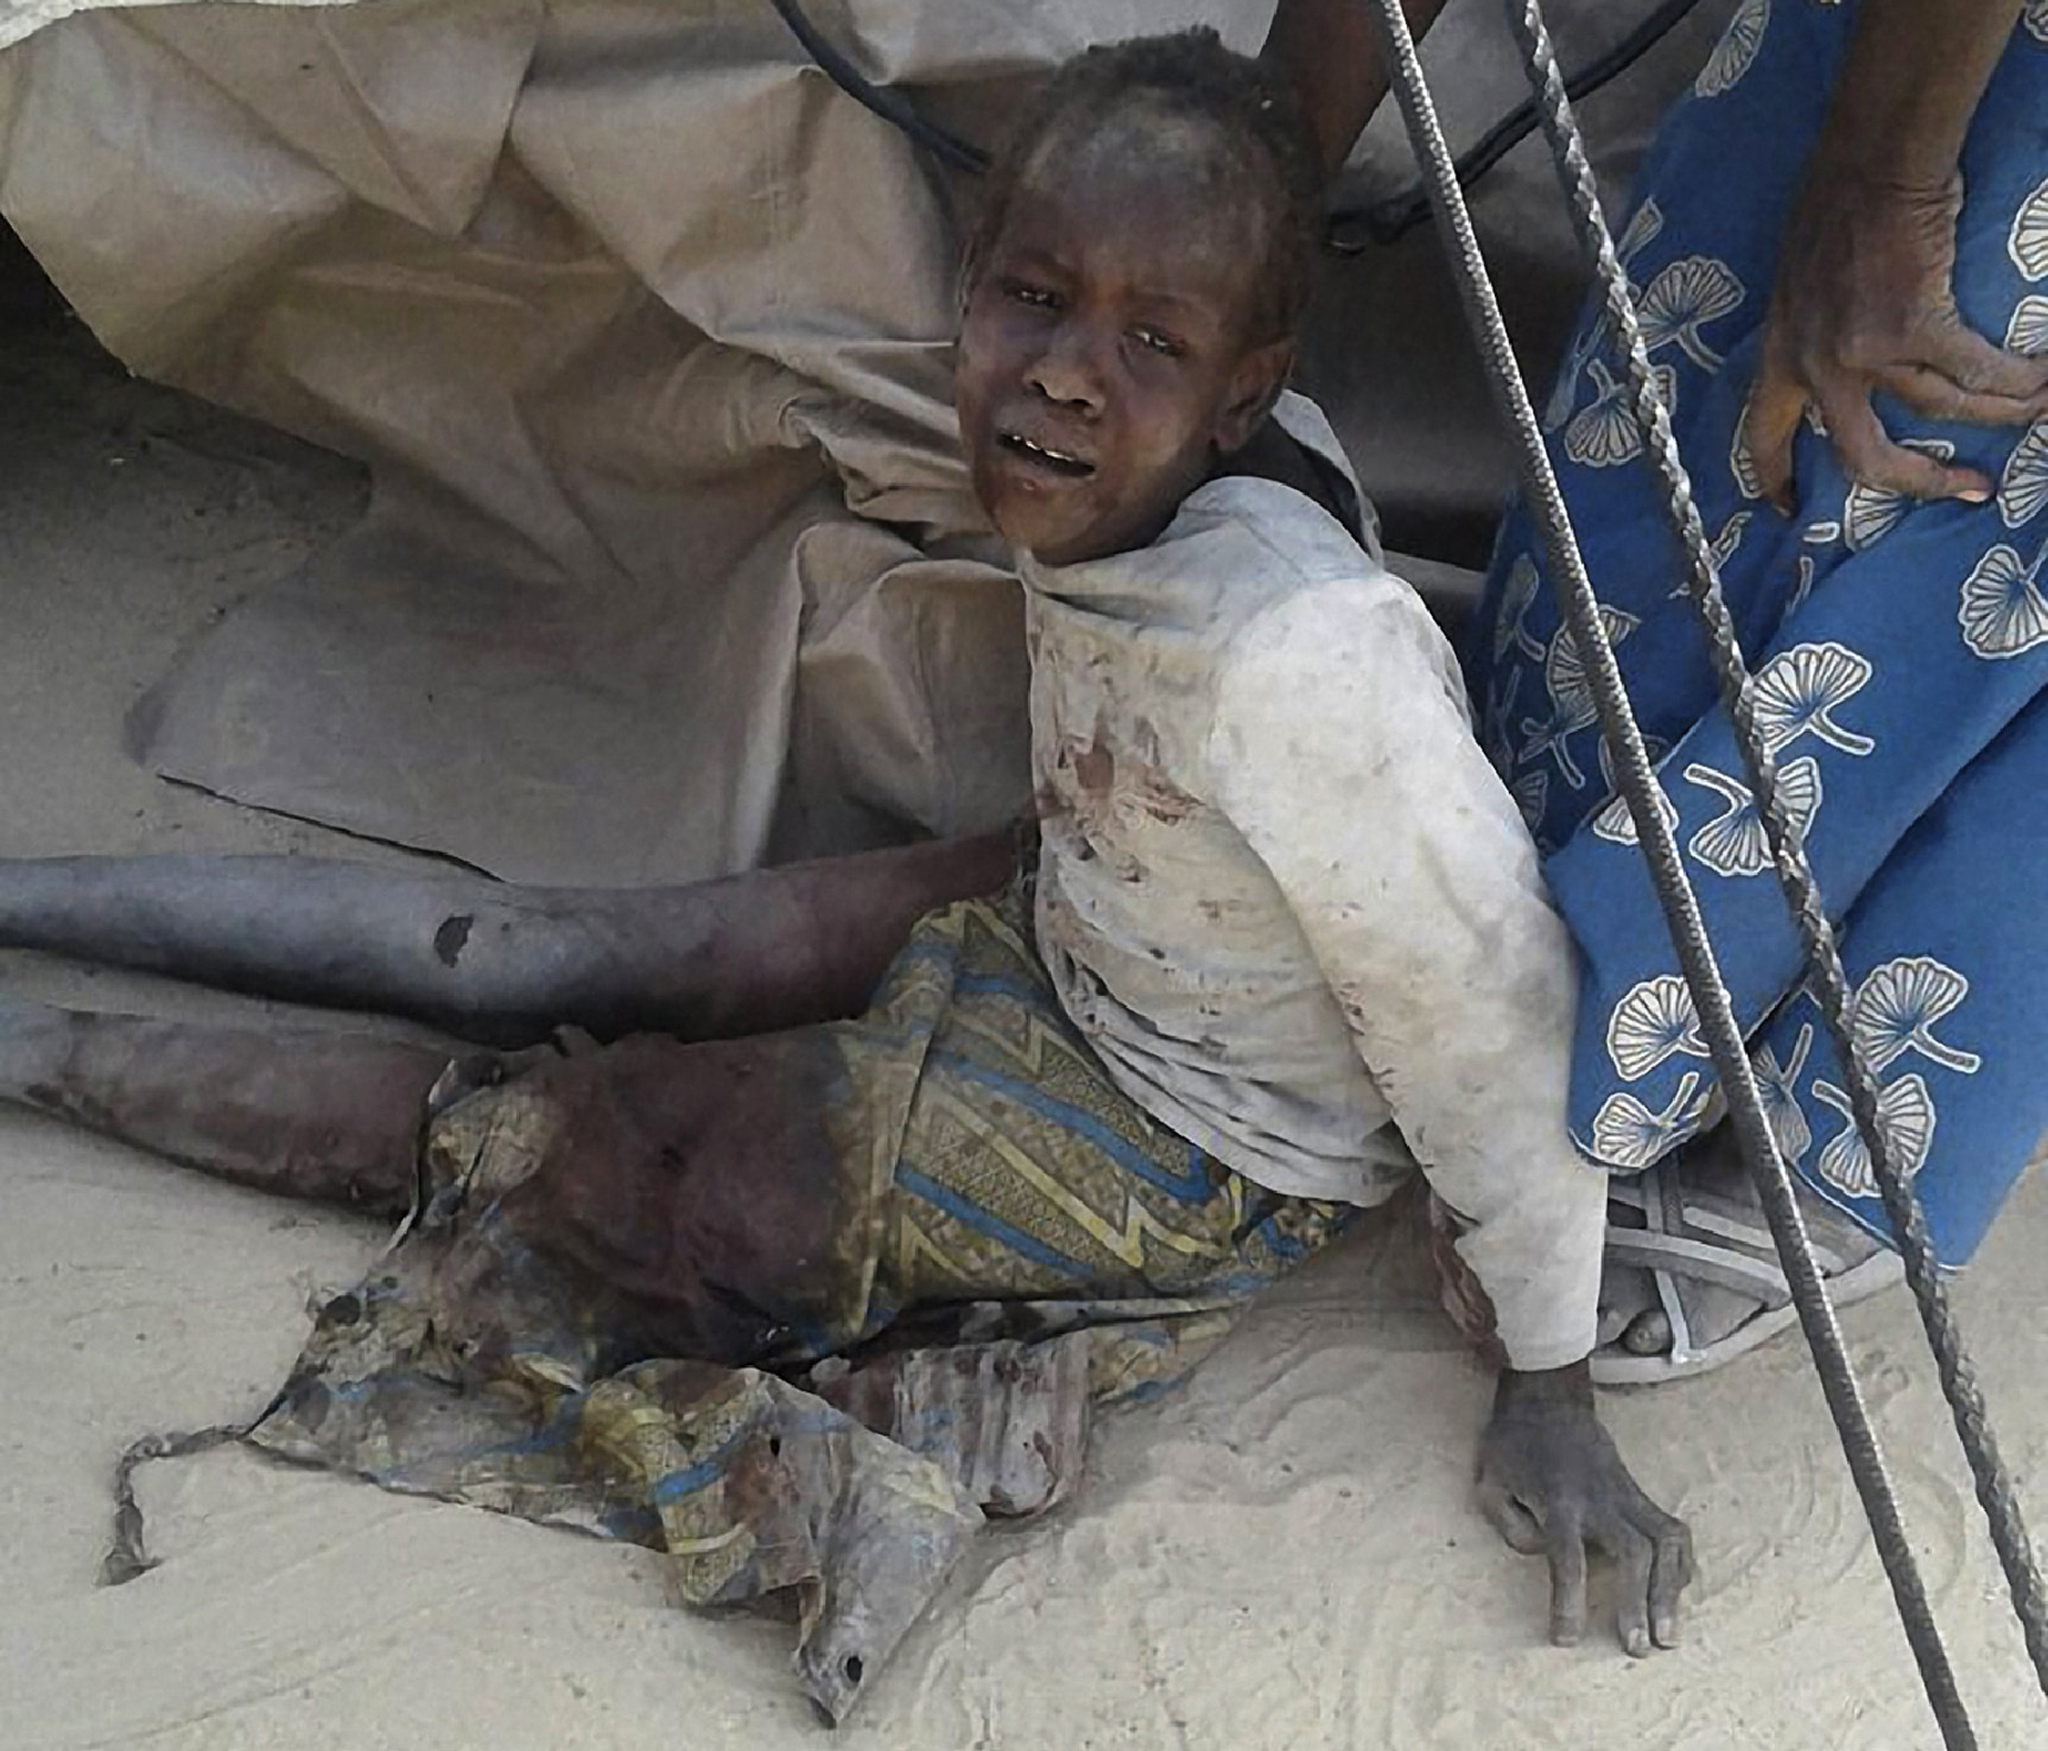 "TOPSHOT - This handout image received courtesy of Doctors Without Border (MSF) on January 17, 2017, shows a wounded child after an air force jet accidentally bombarded a camp for those displaced by Boko Haram Islamists, in Rann, northeast Nigeria. At least 52 aid workers and civilians were killed on January 17, 2017, when an air force jet accidentally bombed a camp in northeast Nigeria instead of Boko Haram militants, medical charity MSF said. / AFP PHOTO / Médecins sans Frontières (MSF) / Handout / RESTRICTED TO EDITORIAL USE - MANDATORY CREDIT ""AFP PHOTO / DOCTORS WITHOUT BORDERS (MSF)"